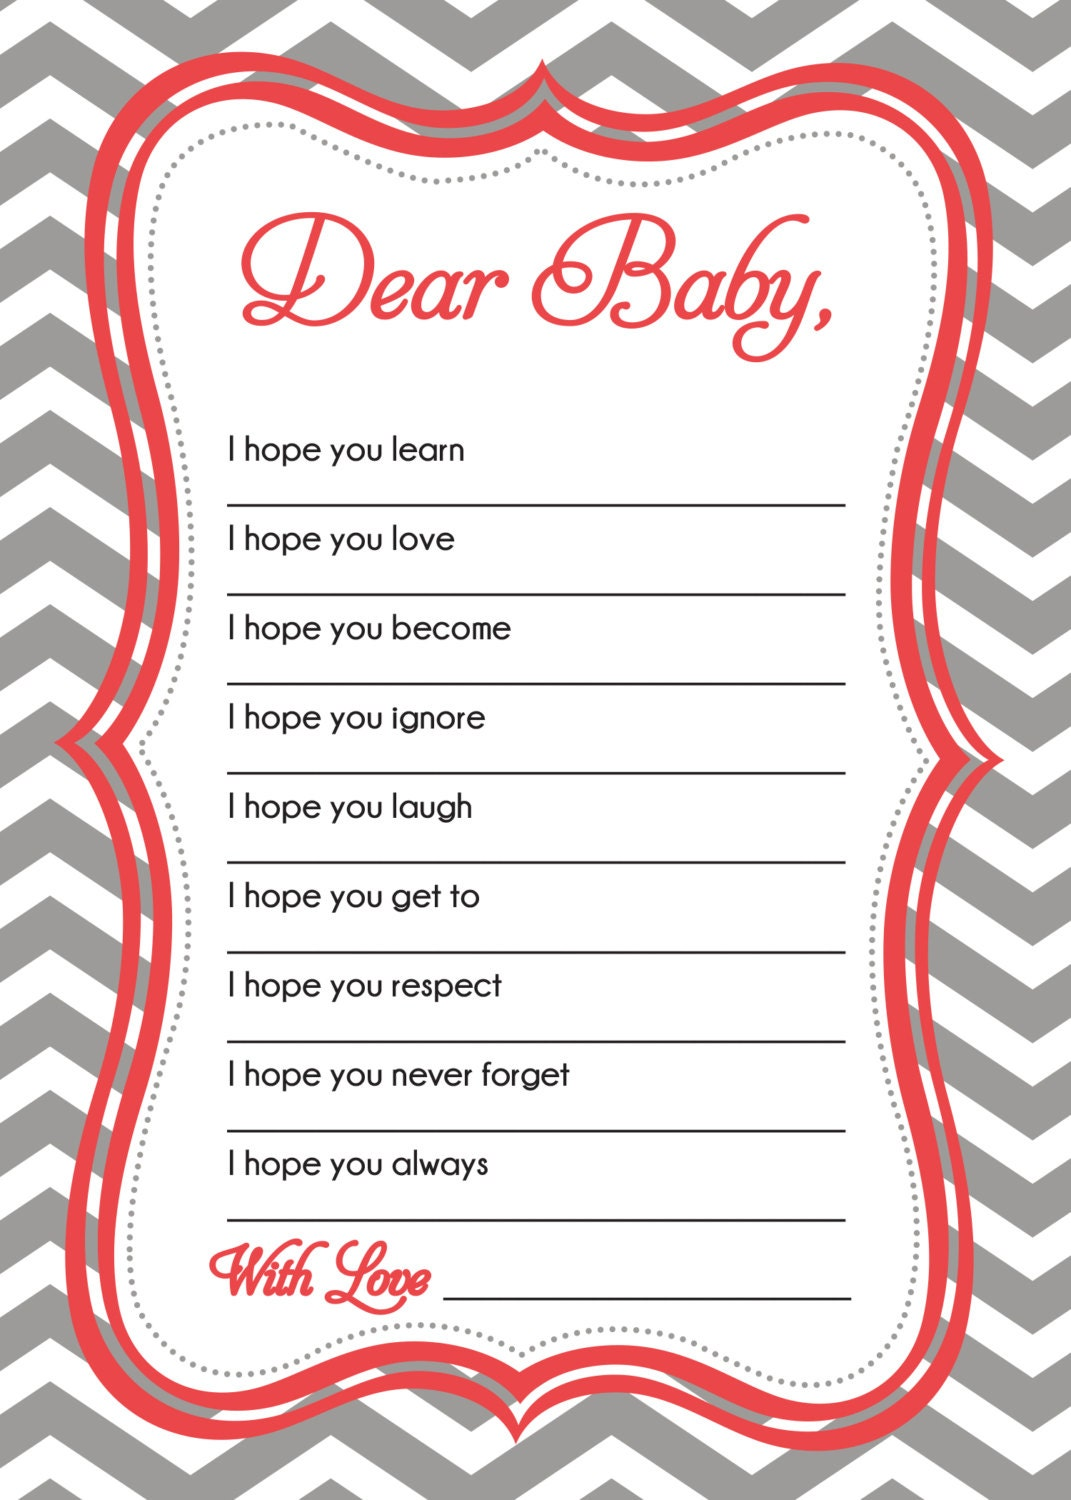 wishes for baby card baby shower game by sldesignteam on etsy